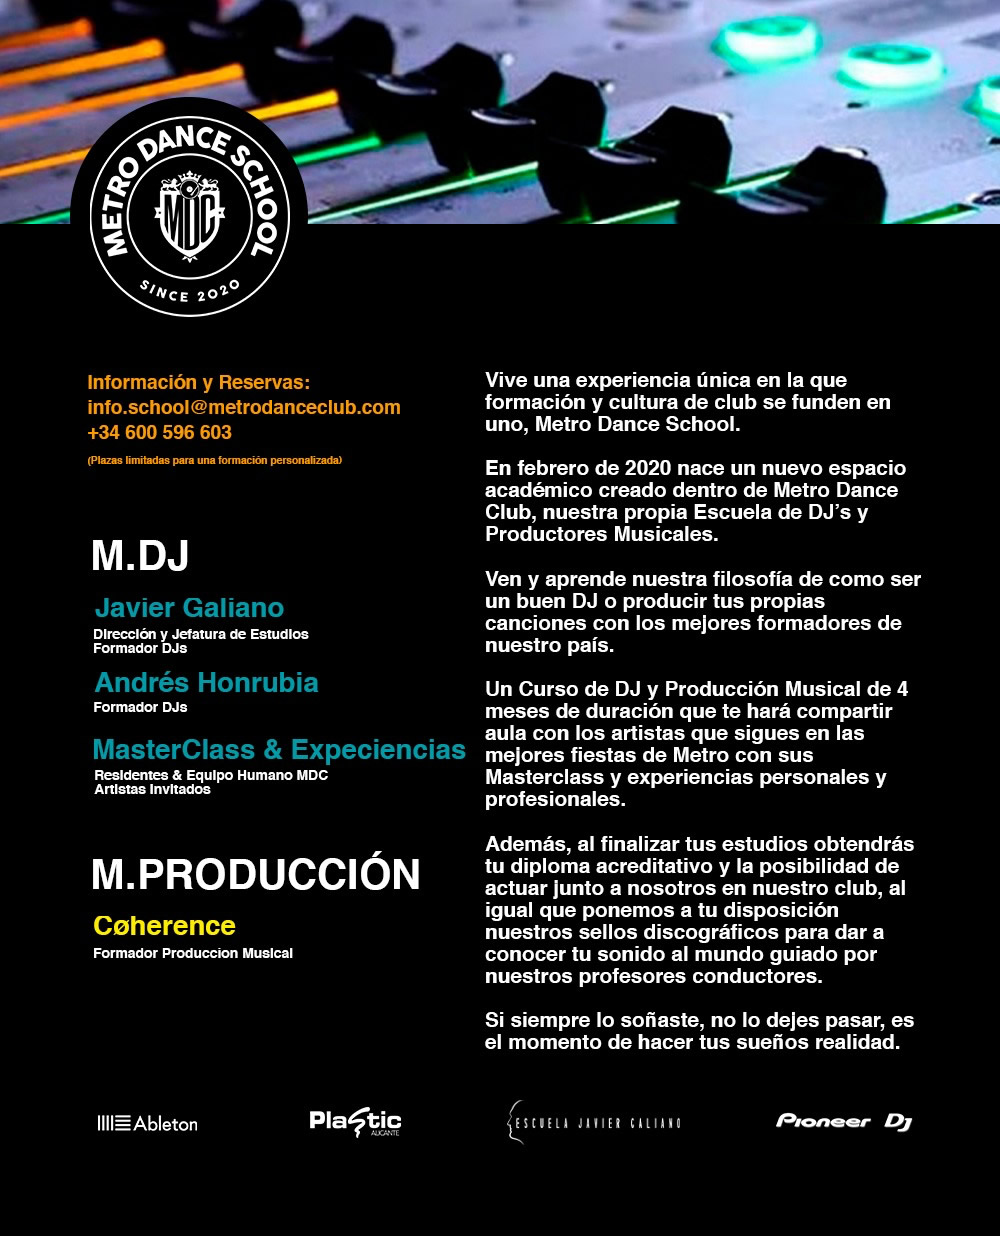 Cartel-Metro-Dance-School.jpg